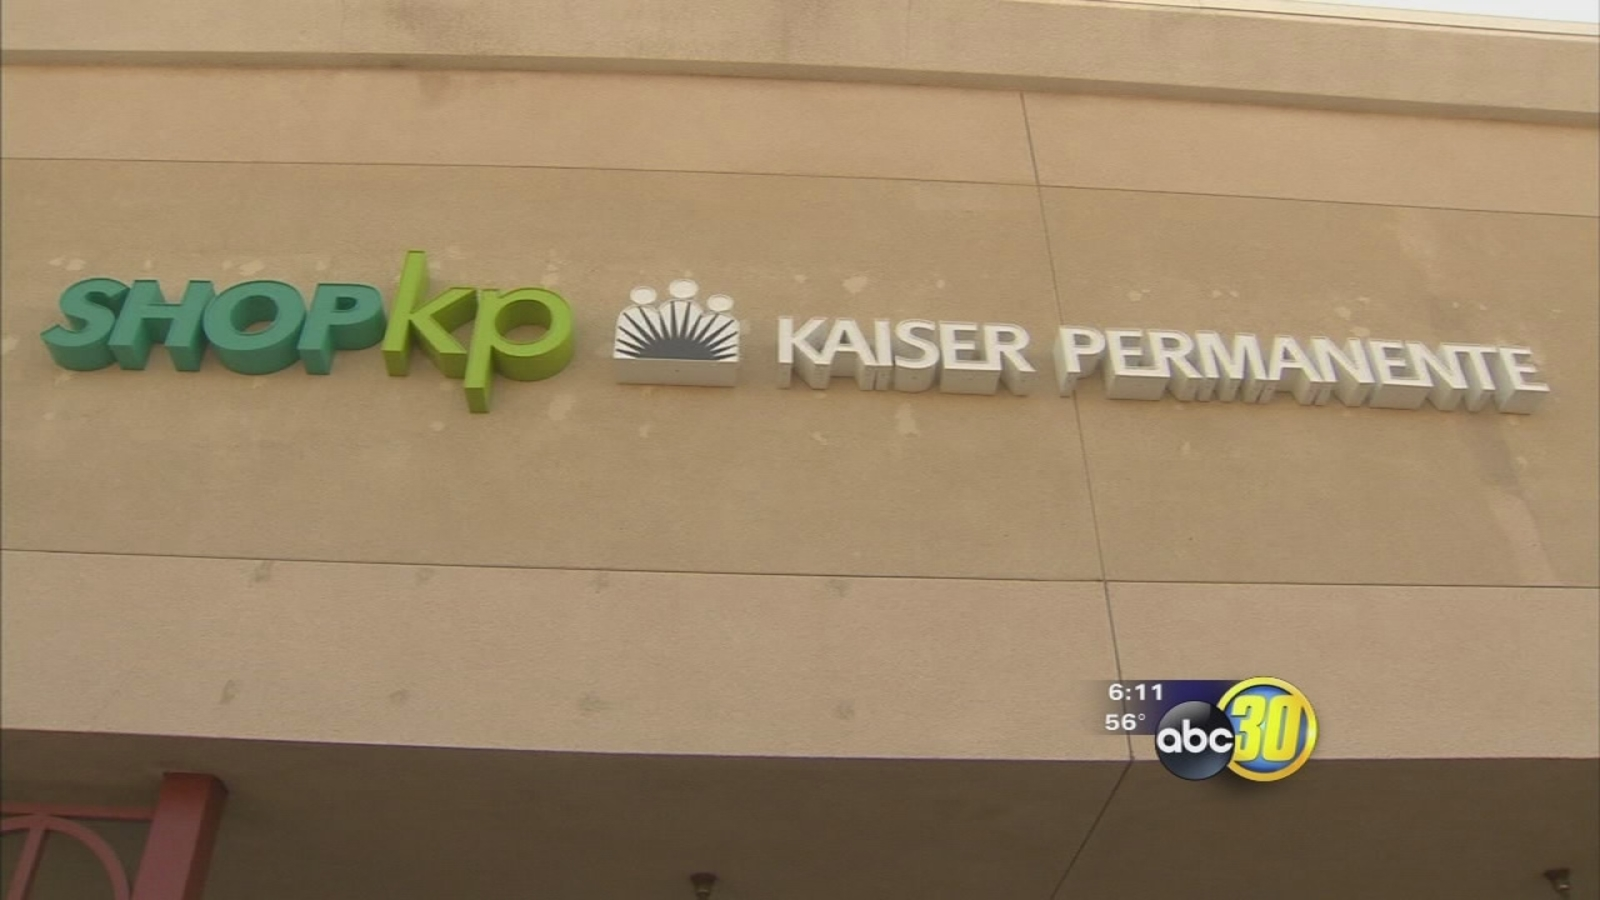 kaiser permanente retail store extending its hours